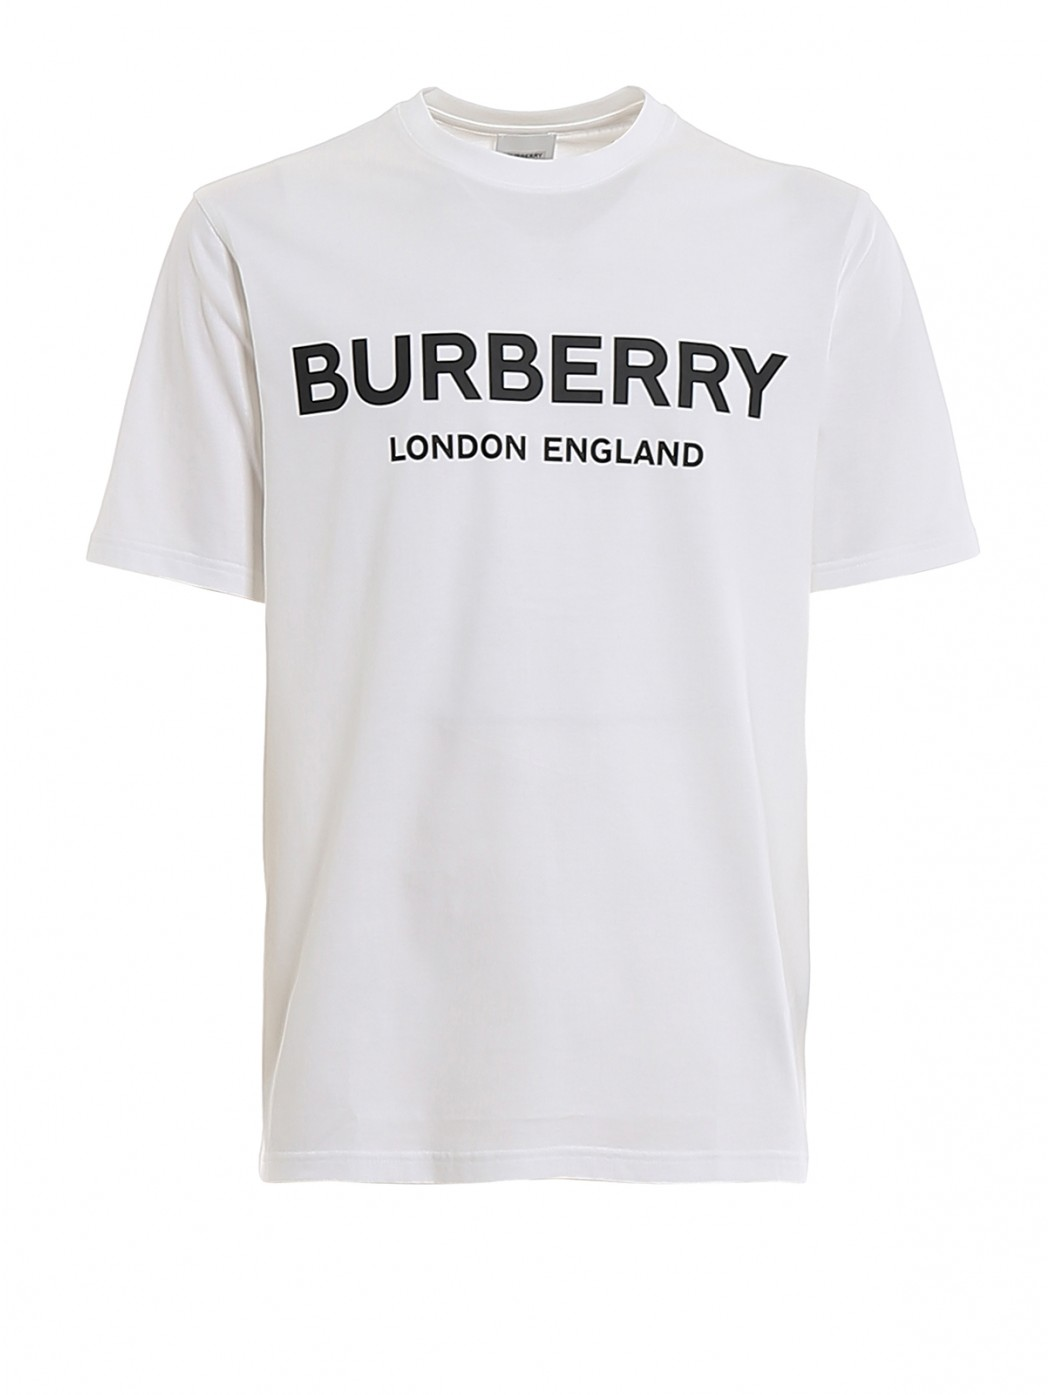 T-SHIRT BURBERRY...